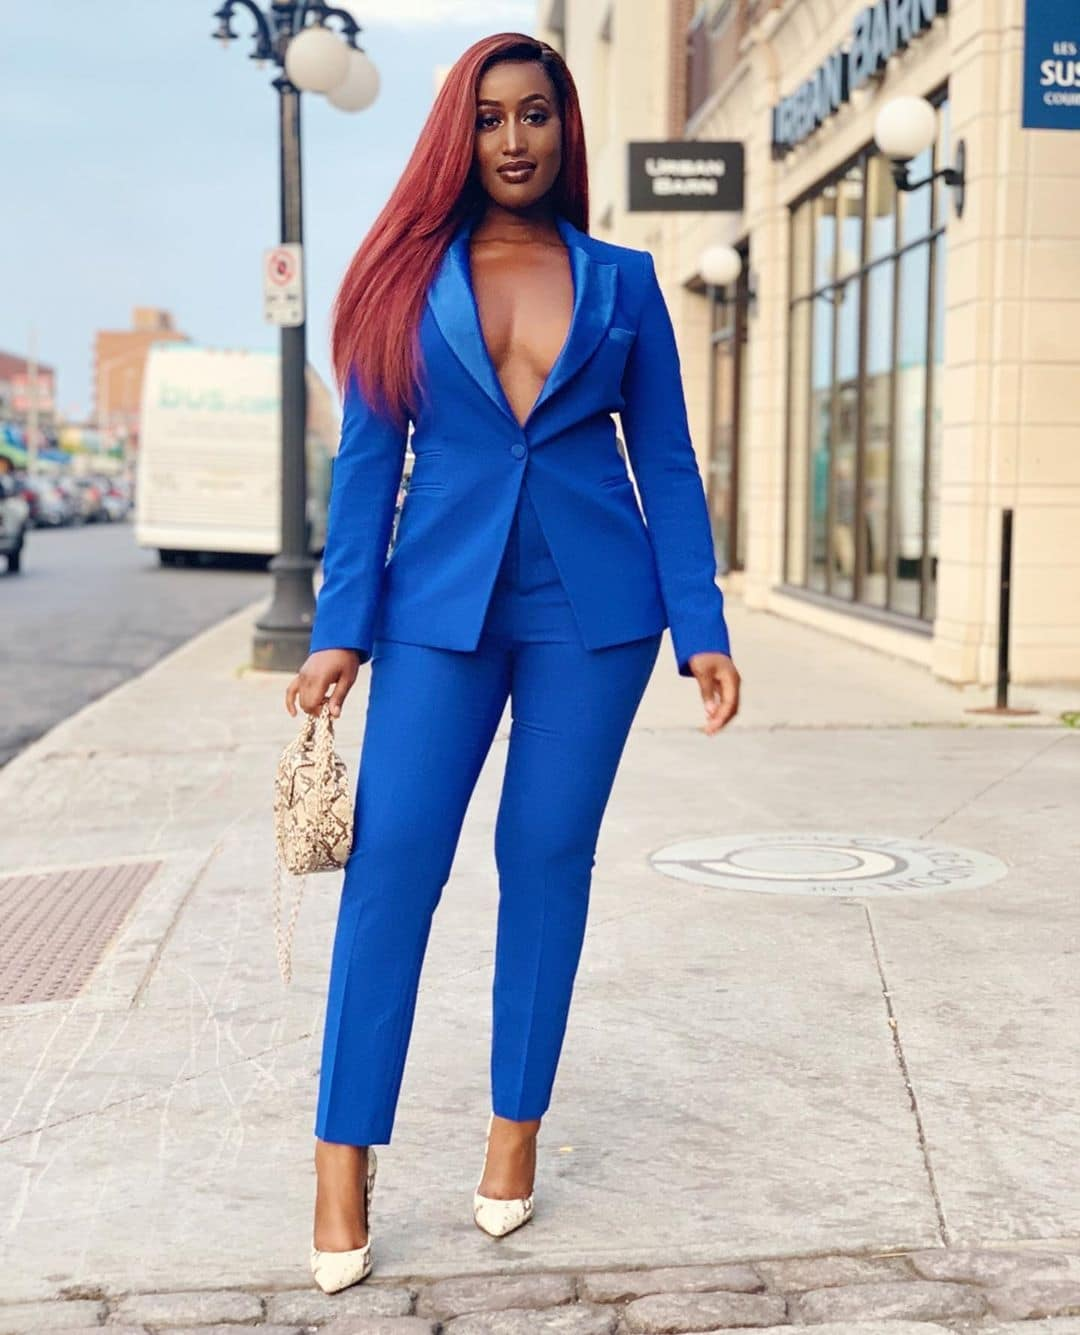 sonia-kah-how-to-wear-blue-with-style